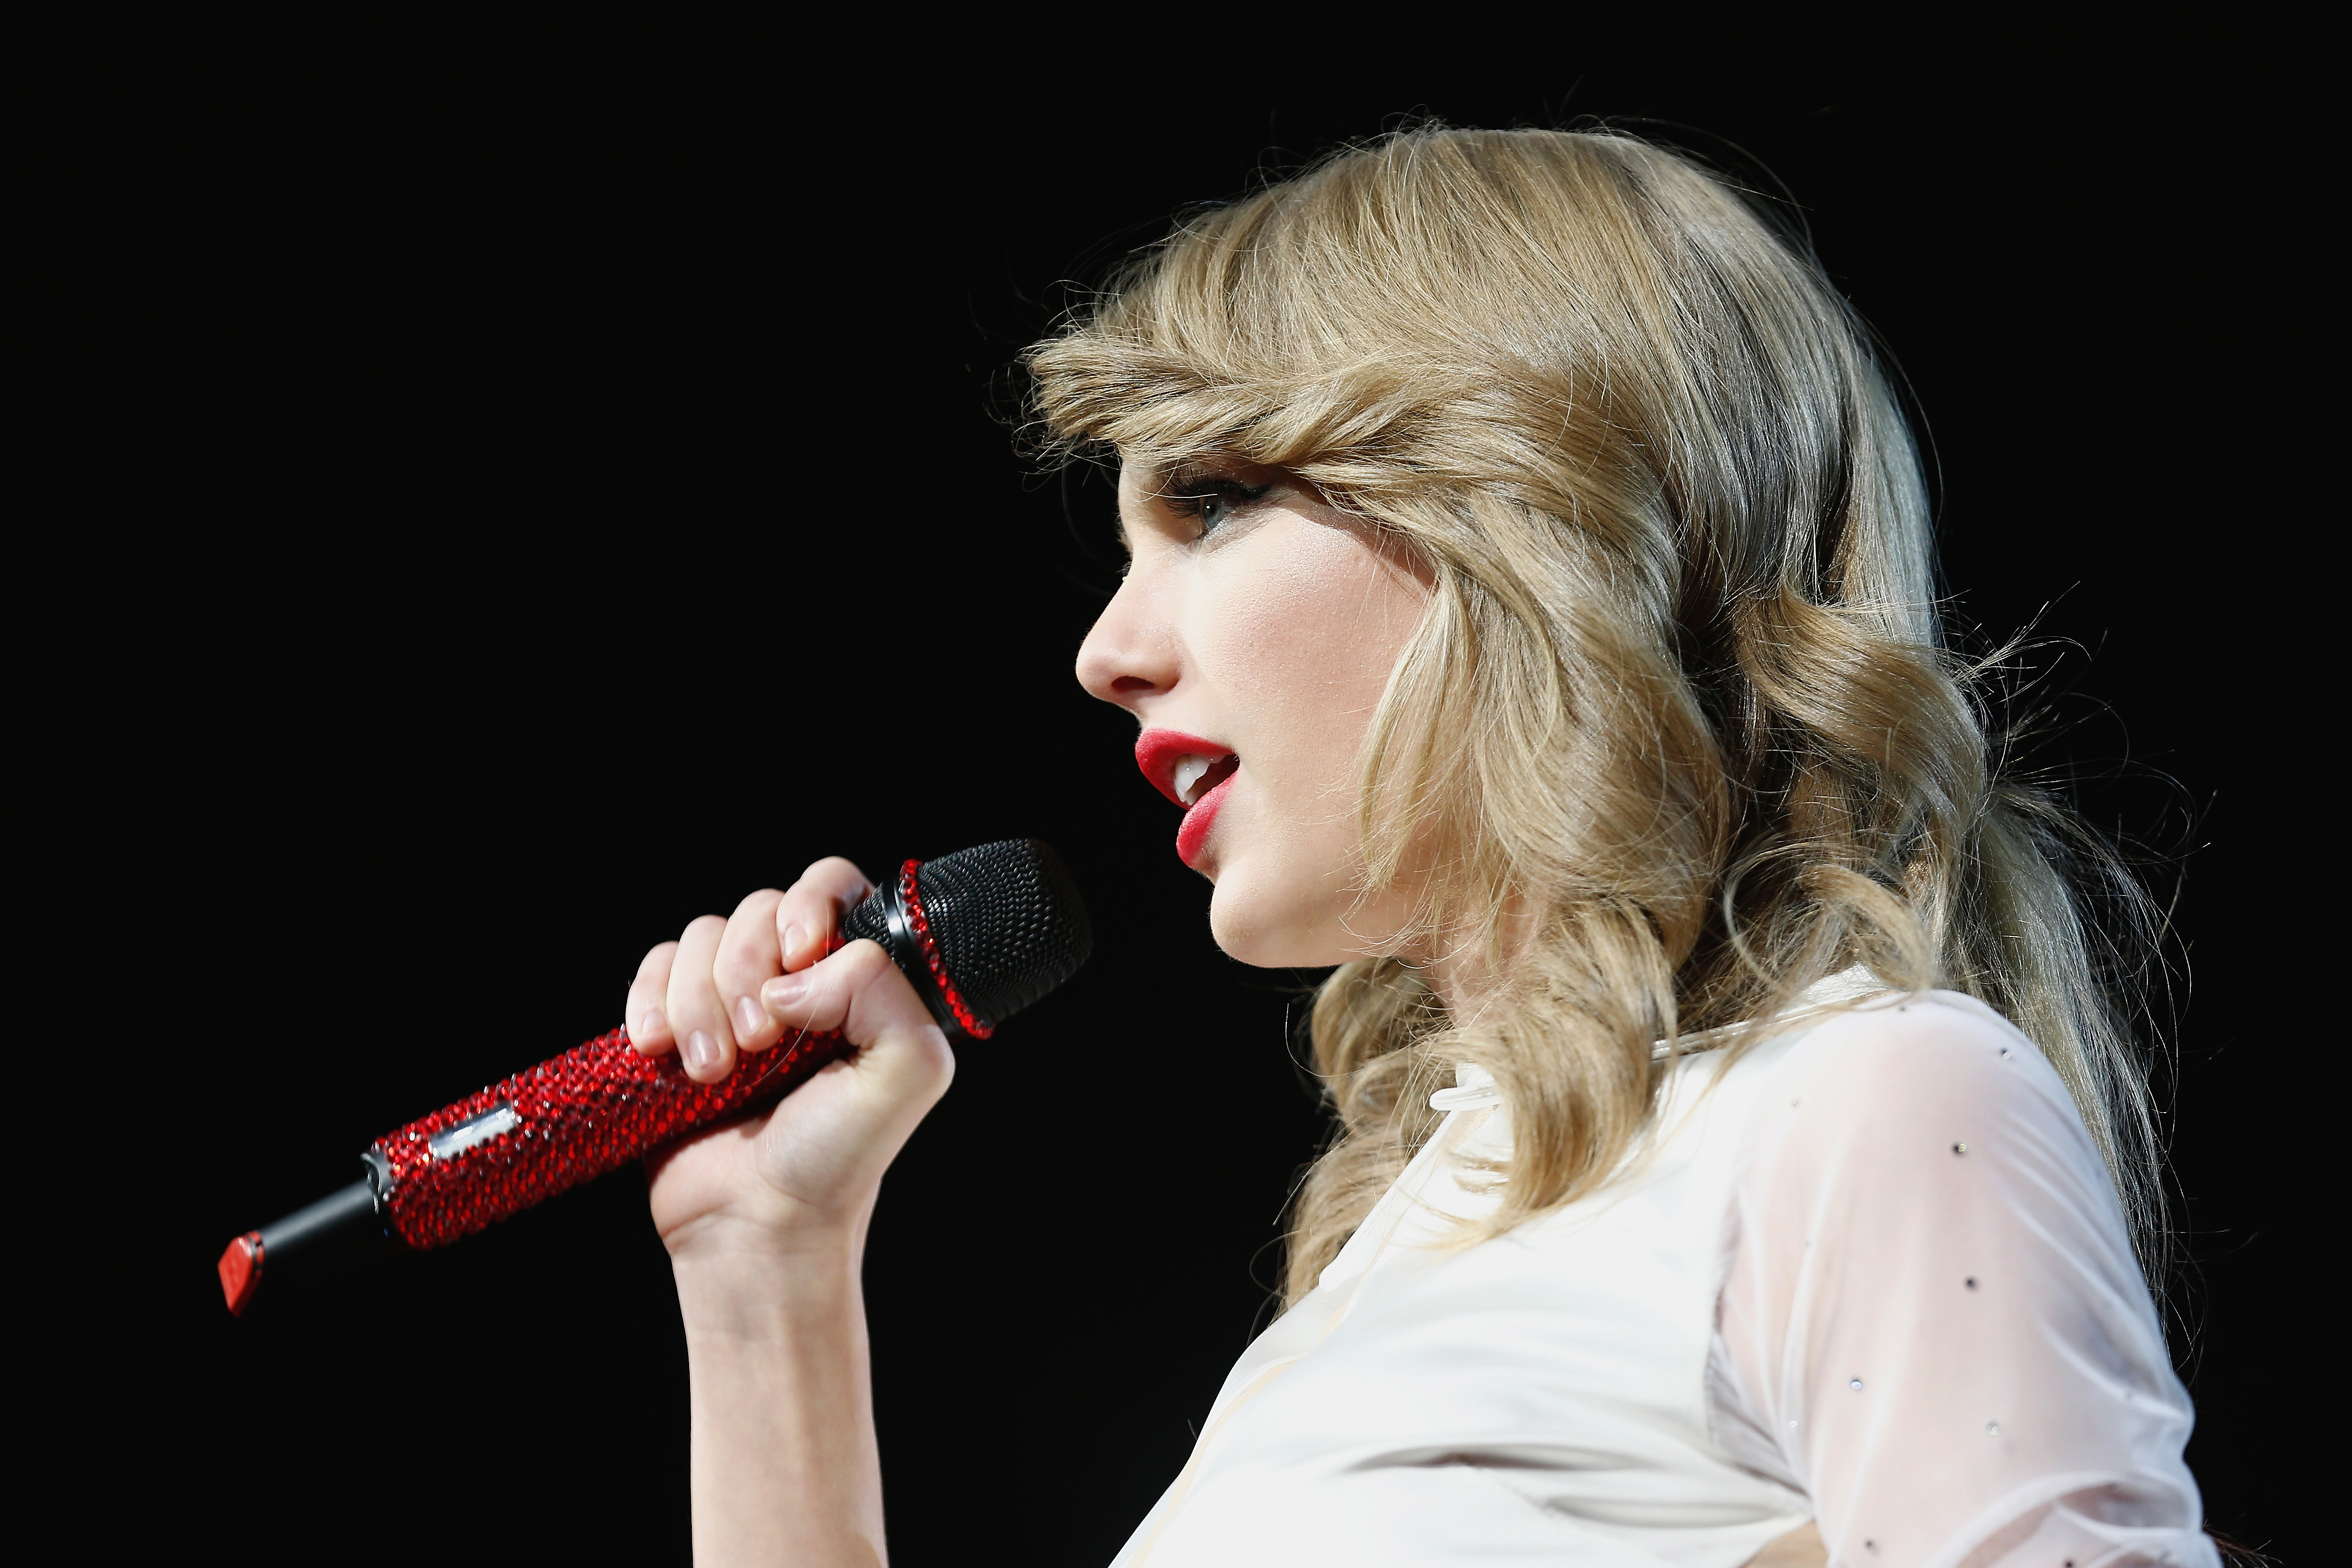 Seven-time Grammy winner Taylor Swift took the European leg of her blockbuster The RED Tour show to Berlin's, O2 World playing to a capacity crowd of more than 10,700 fans on February 7, 2014 in Berlin, Germany.